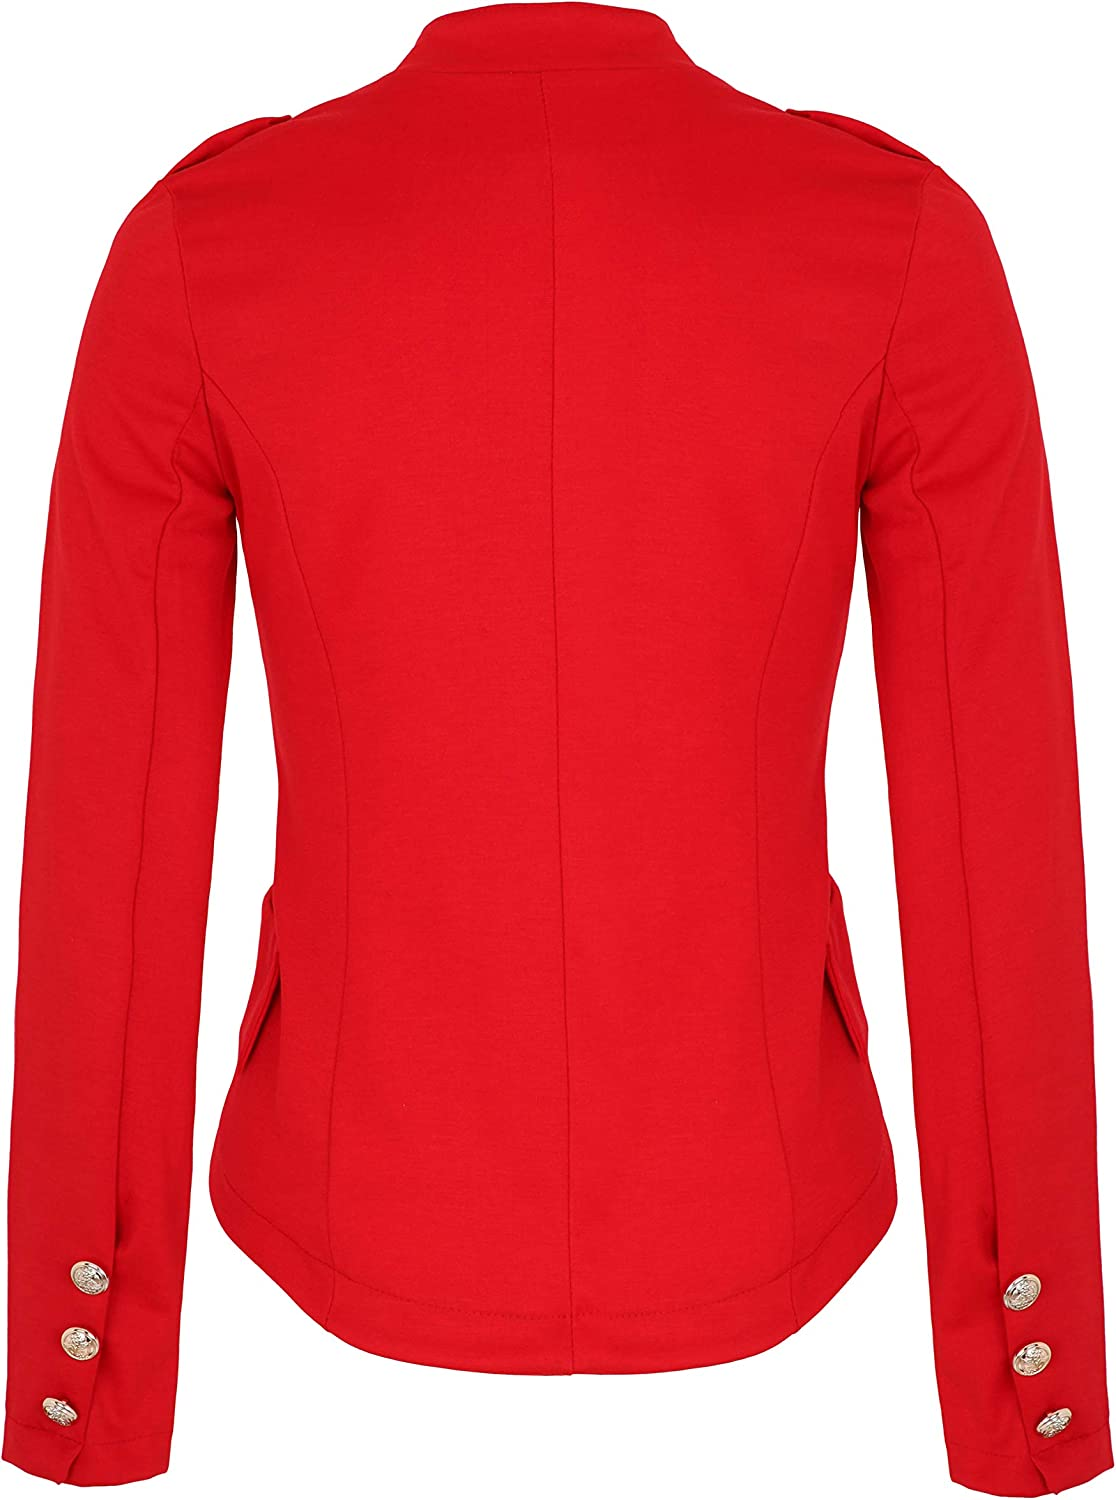 4tuality AO Damen Massimo Military Blazer mit Stickerei Slim fit Gr. S - XXL Rot